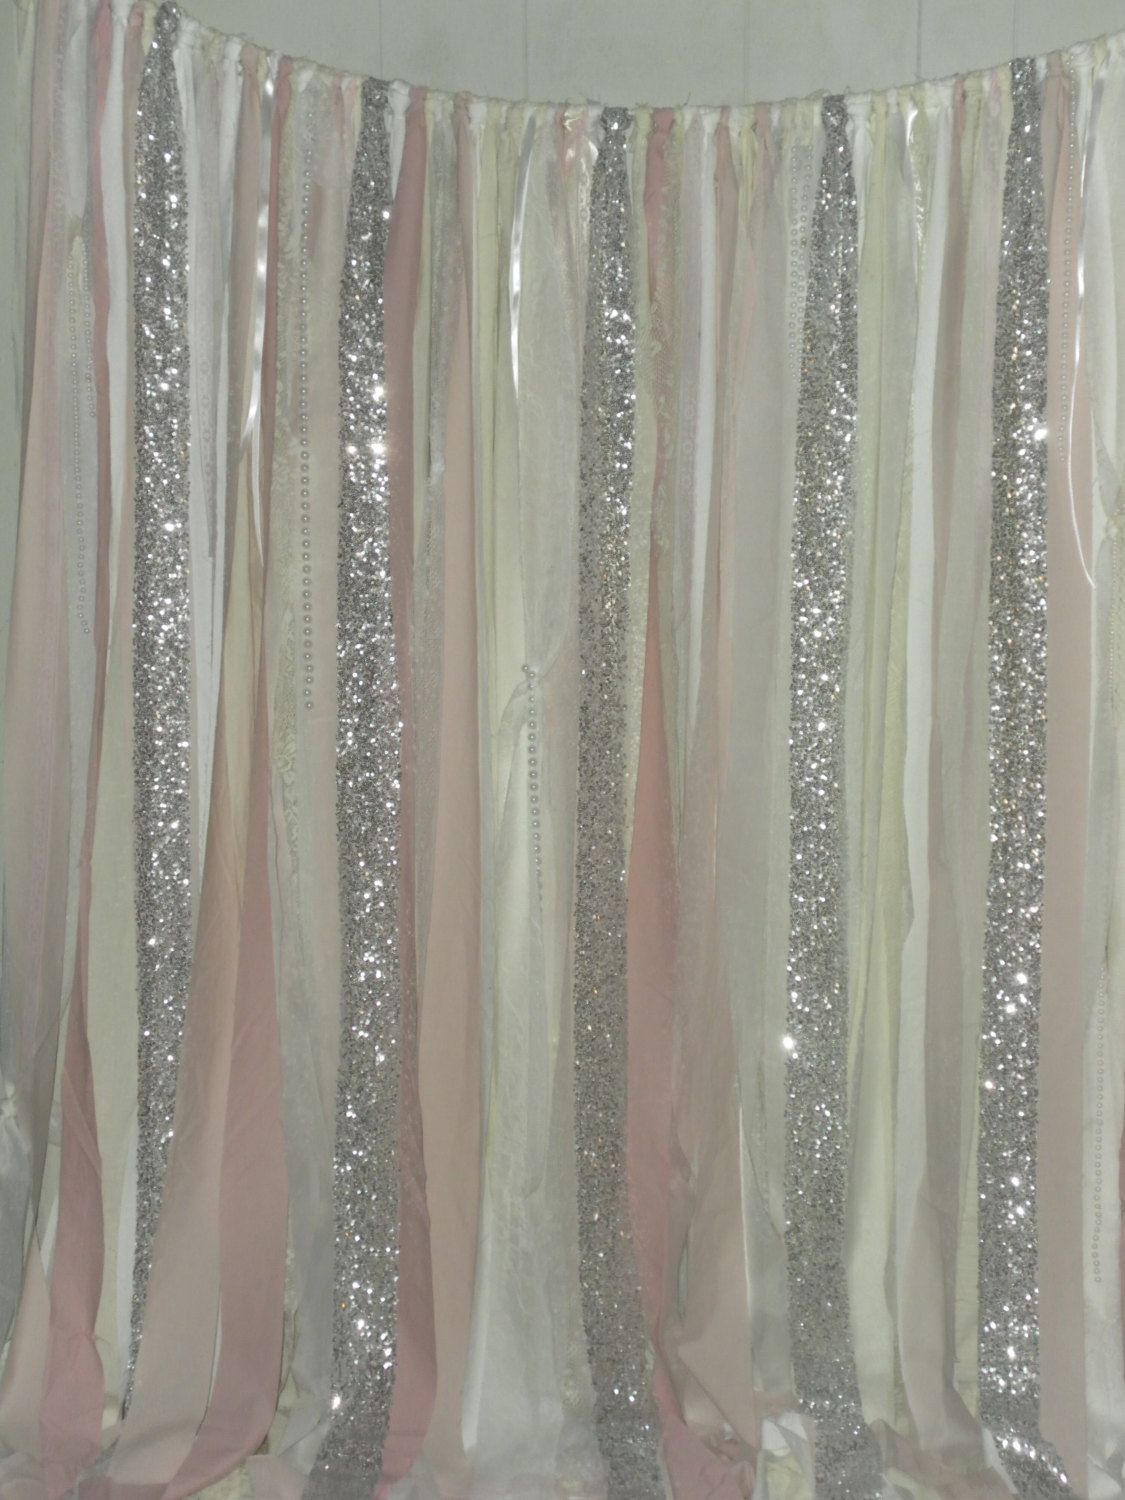 Silver Sequin Fabric Garland Blush Pink White And By Changesbyneci Home Decor